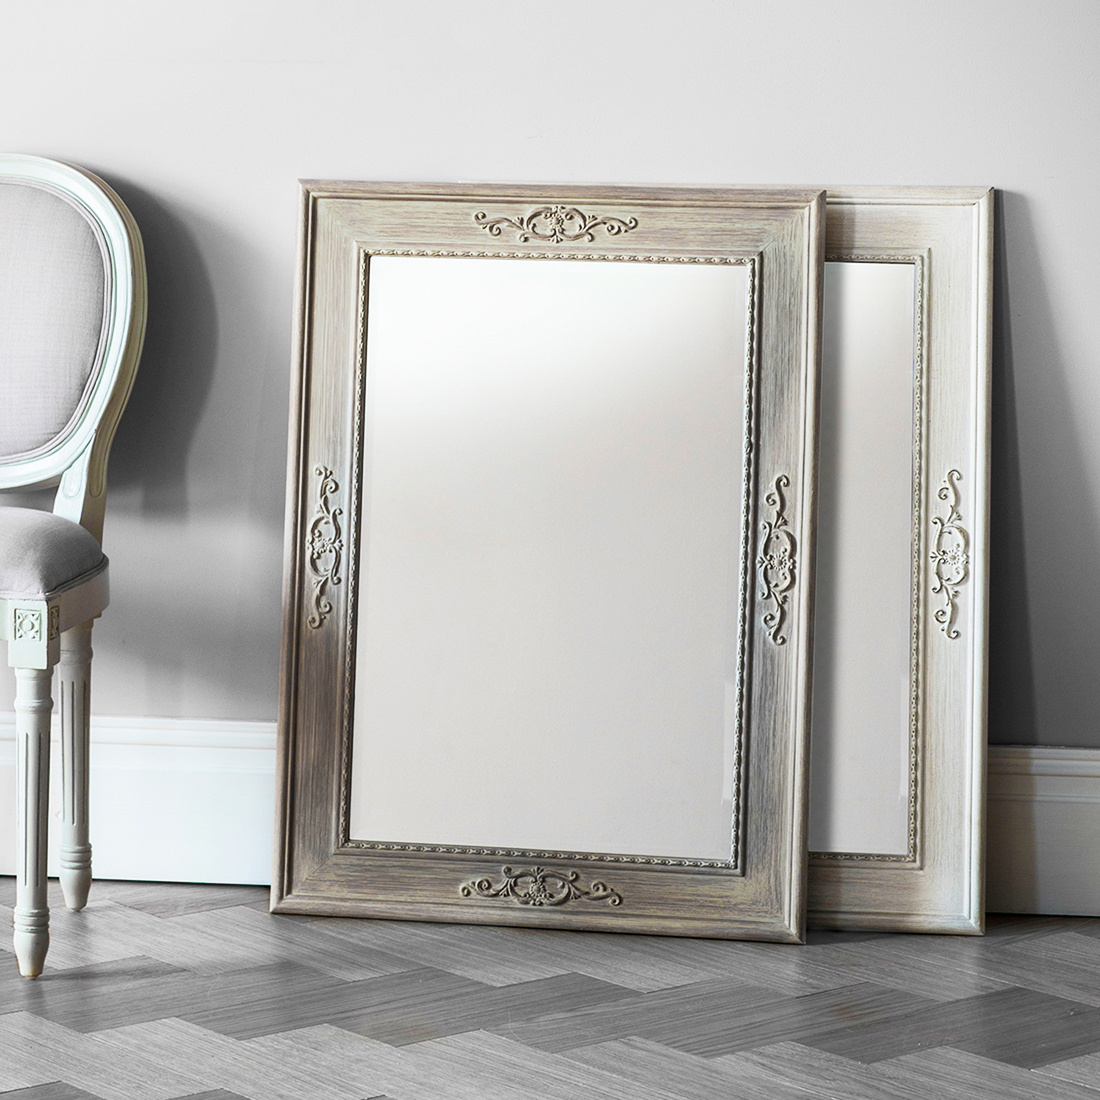 Decorative Rectangular Wooden Wall Mirrors – White Or Limed Oak Regarding Well Known Rectangular Wall Mirrors (View 11 of 20)